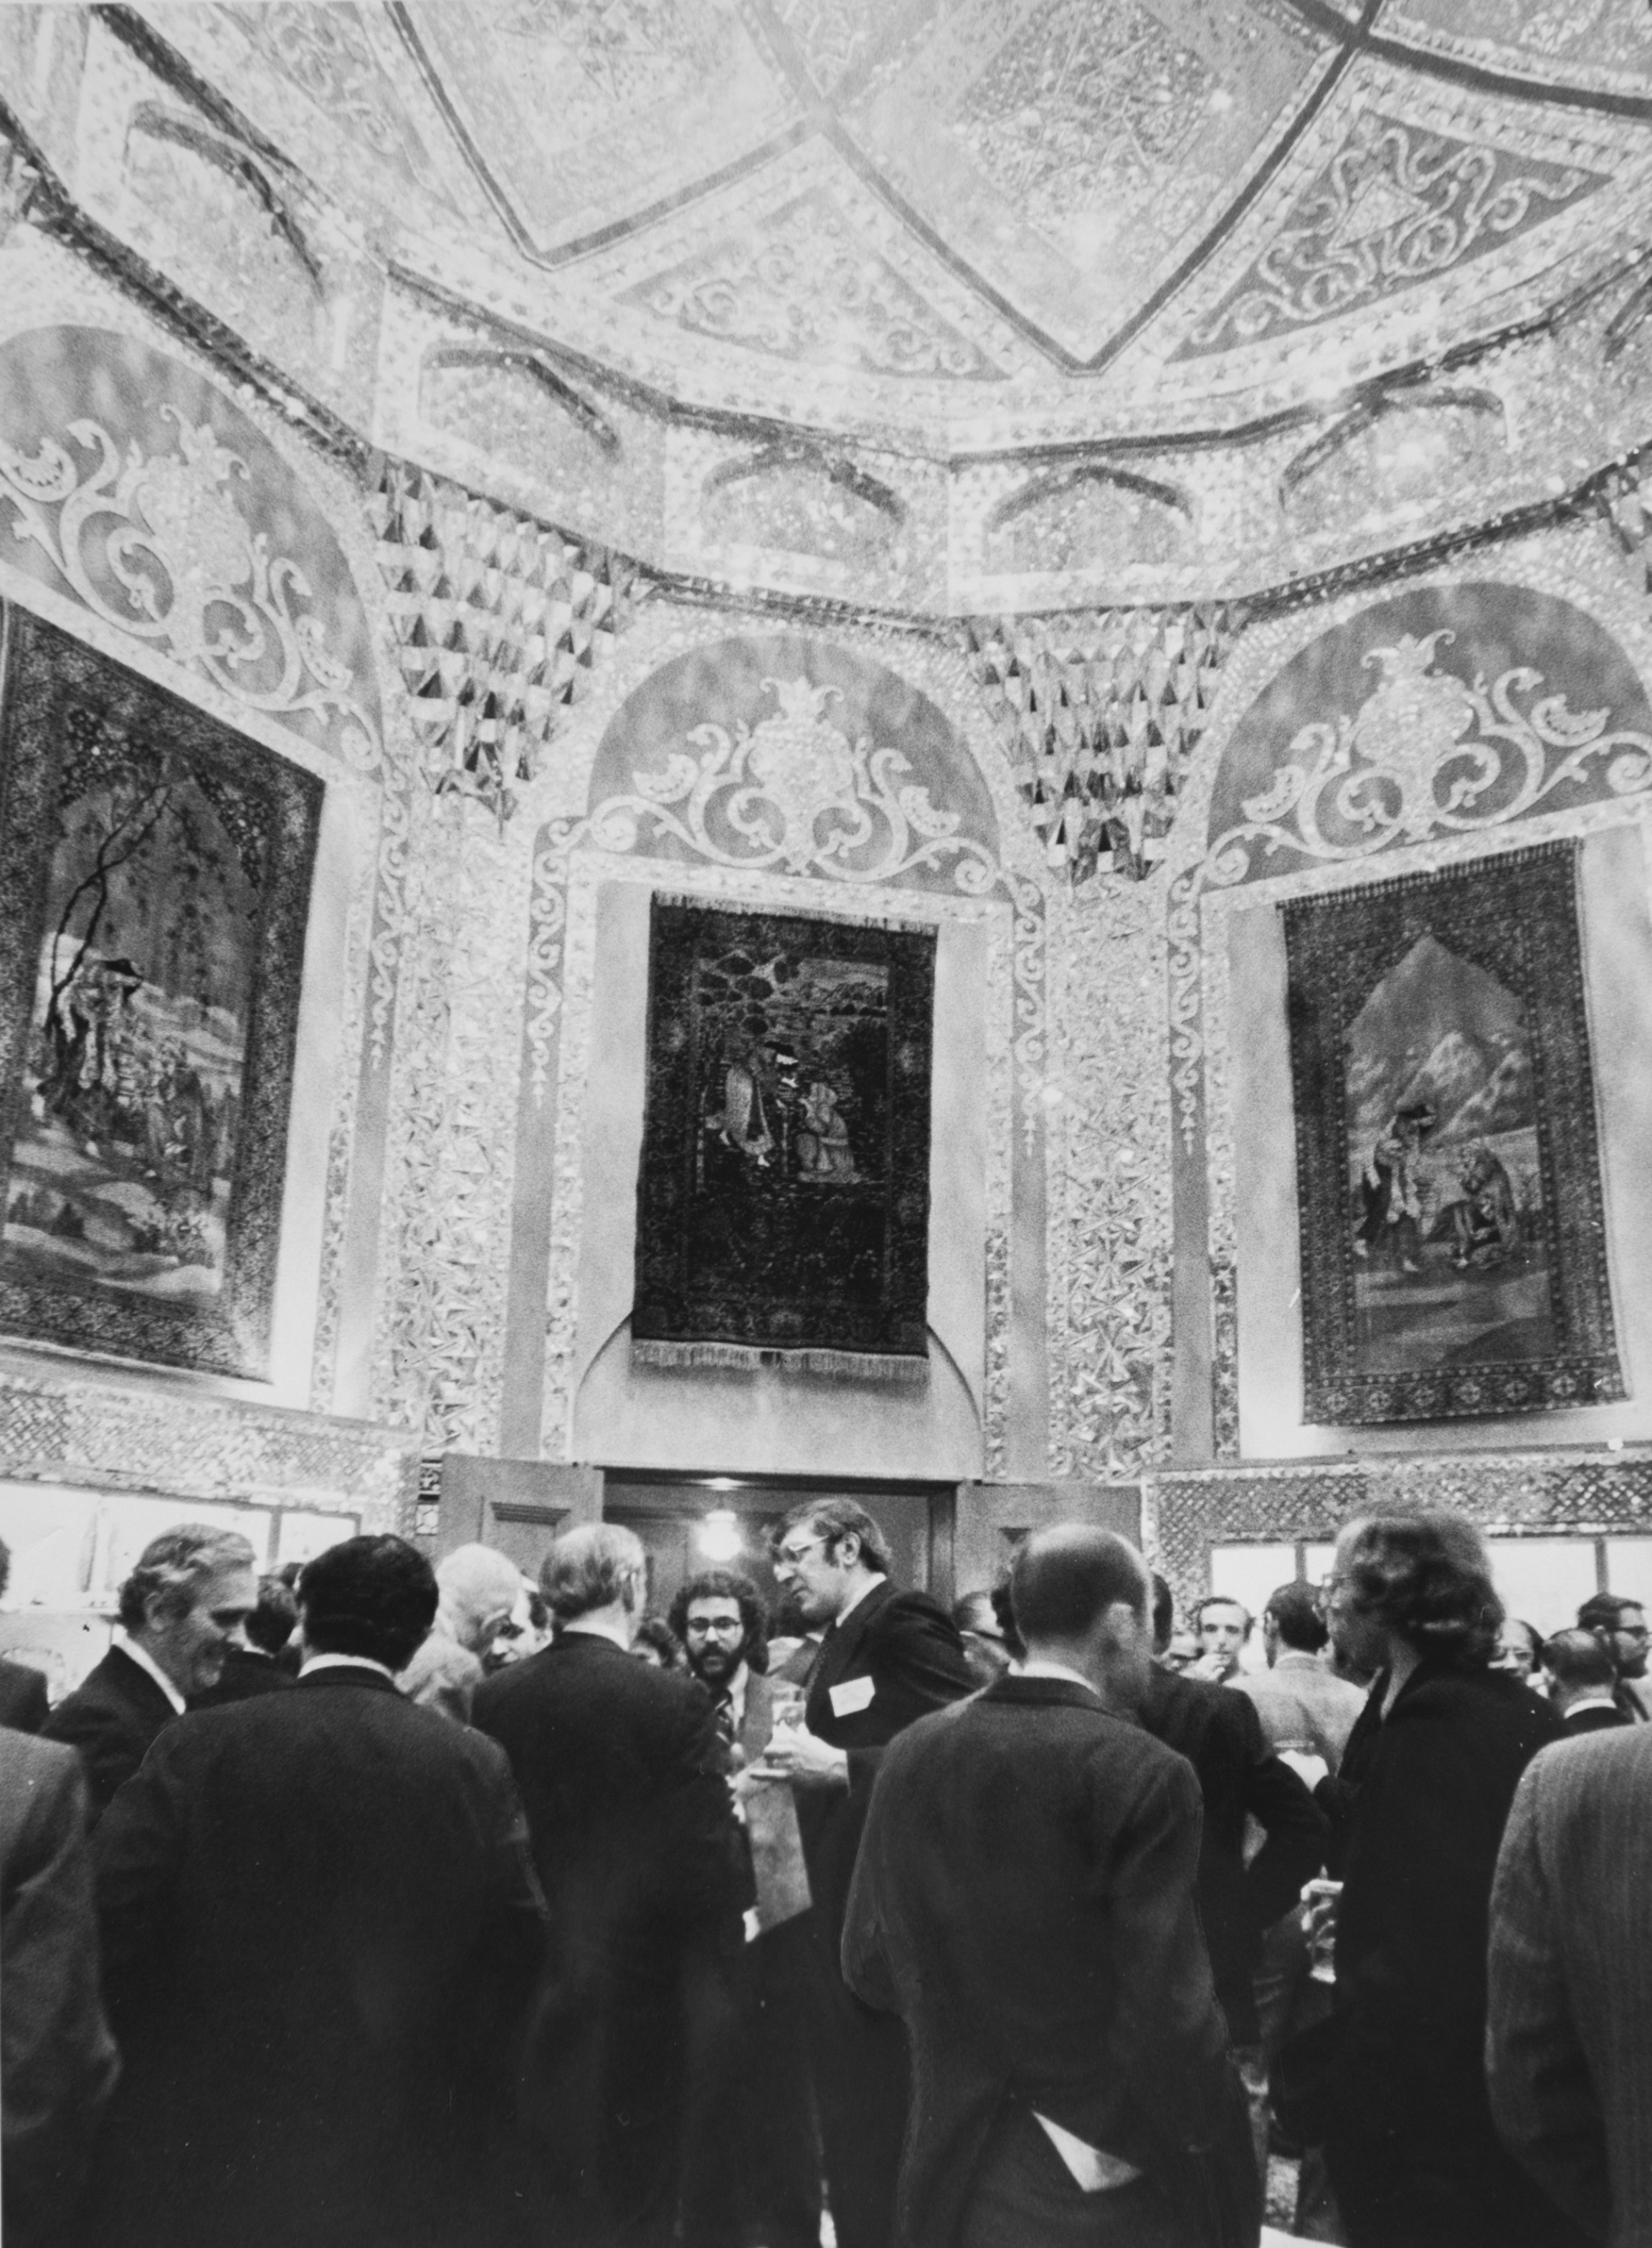 The Iranian Embassy's Mosaic Room is pictured in 1975.